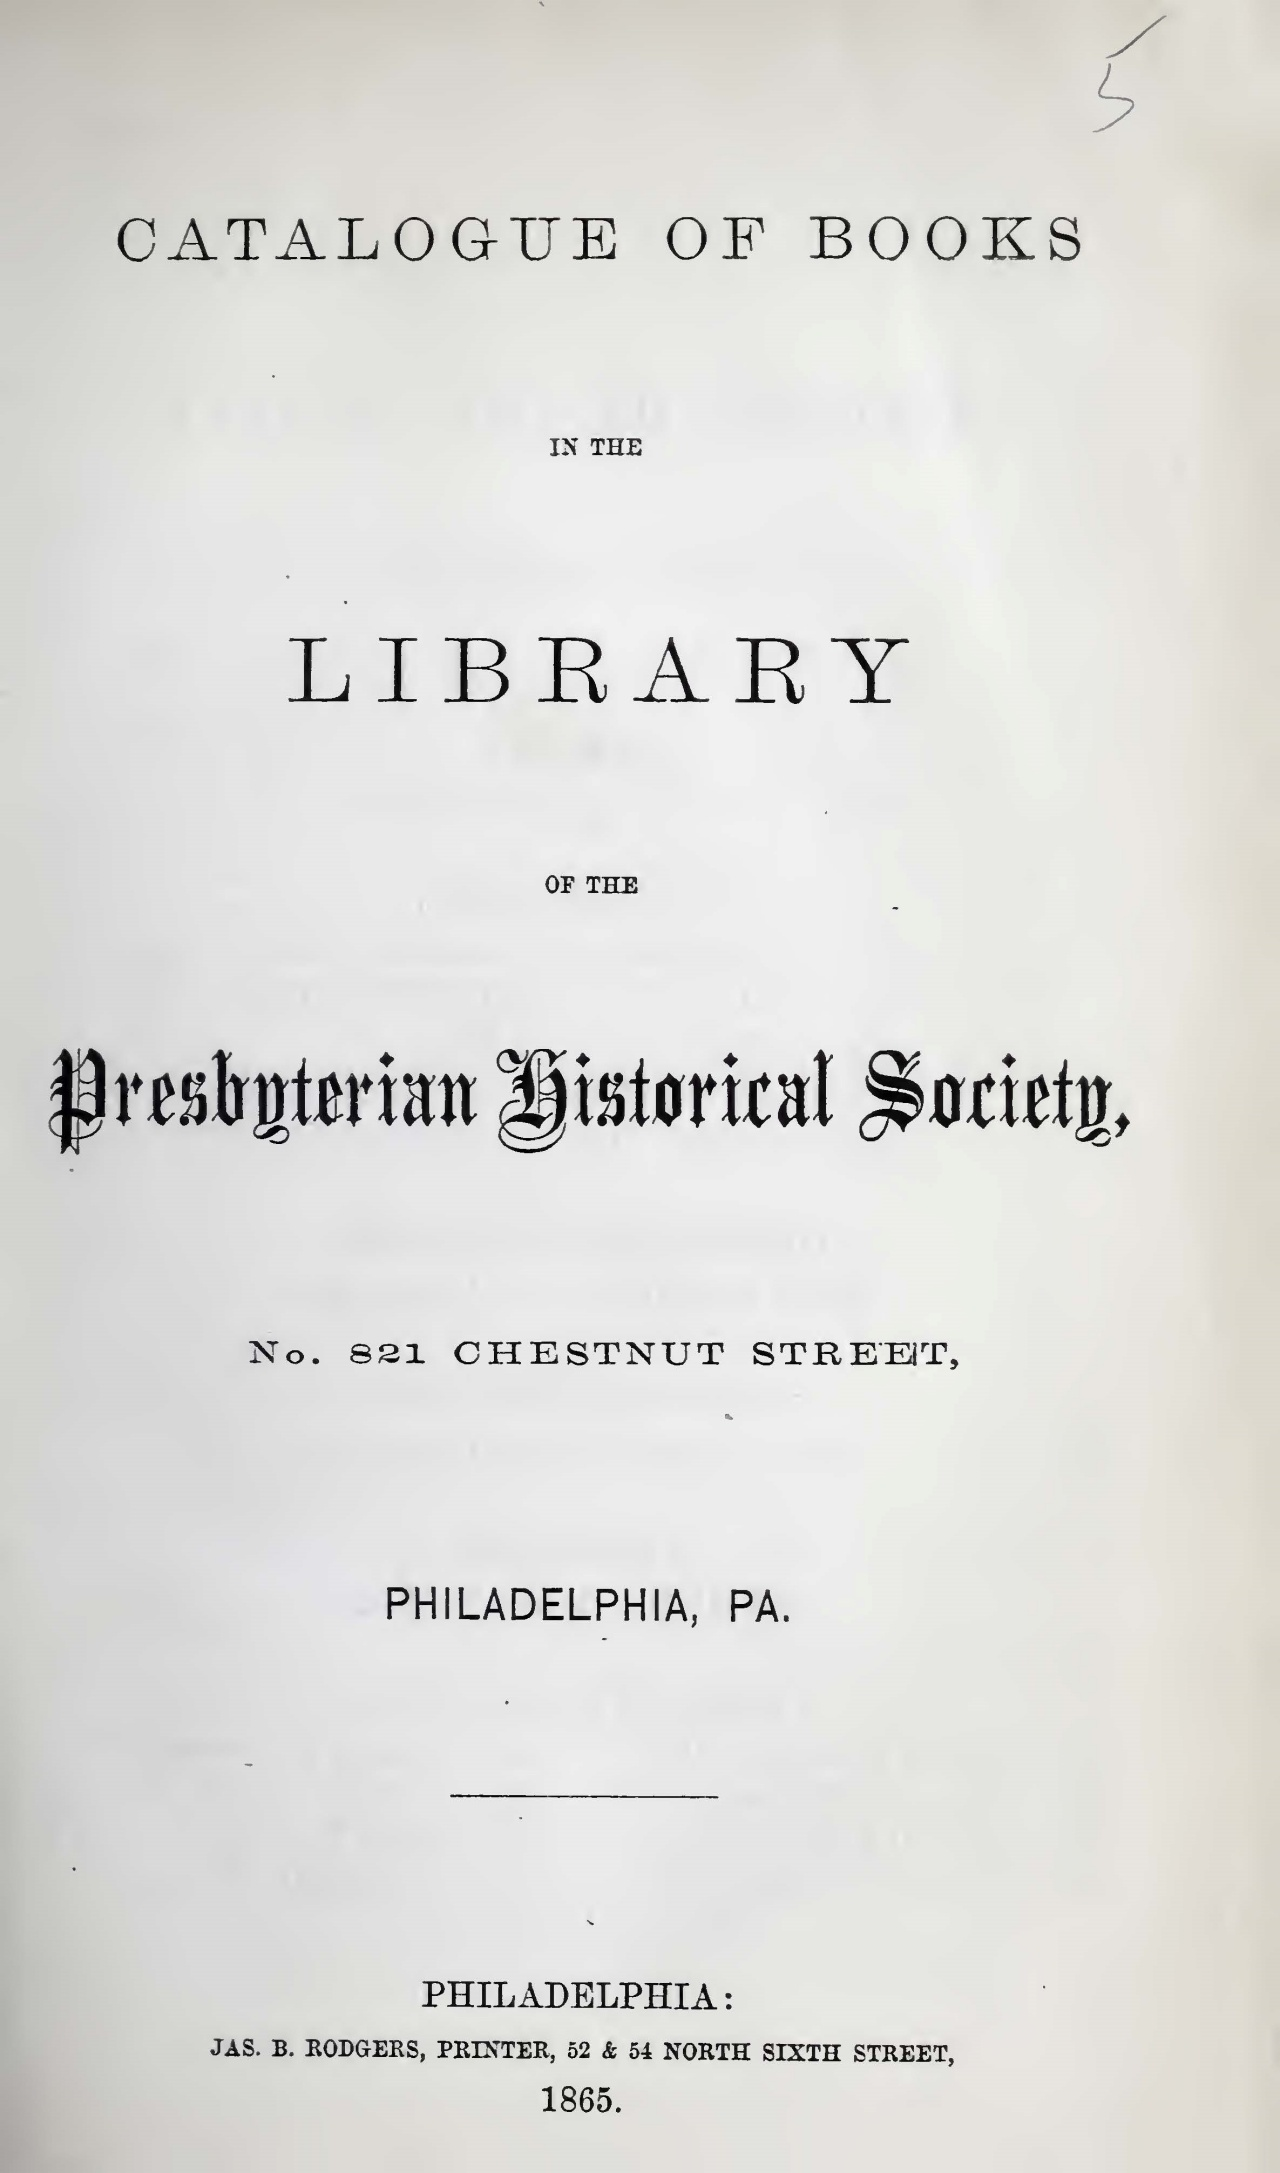 Agnew, Samuel, Catalogue of Books in the Library of the PHS Title Page.jpg